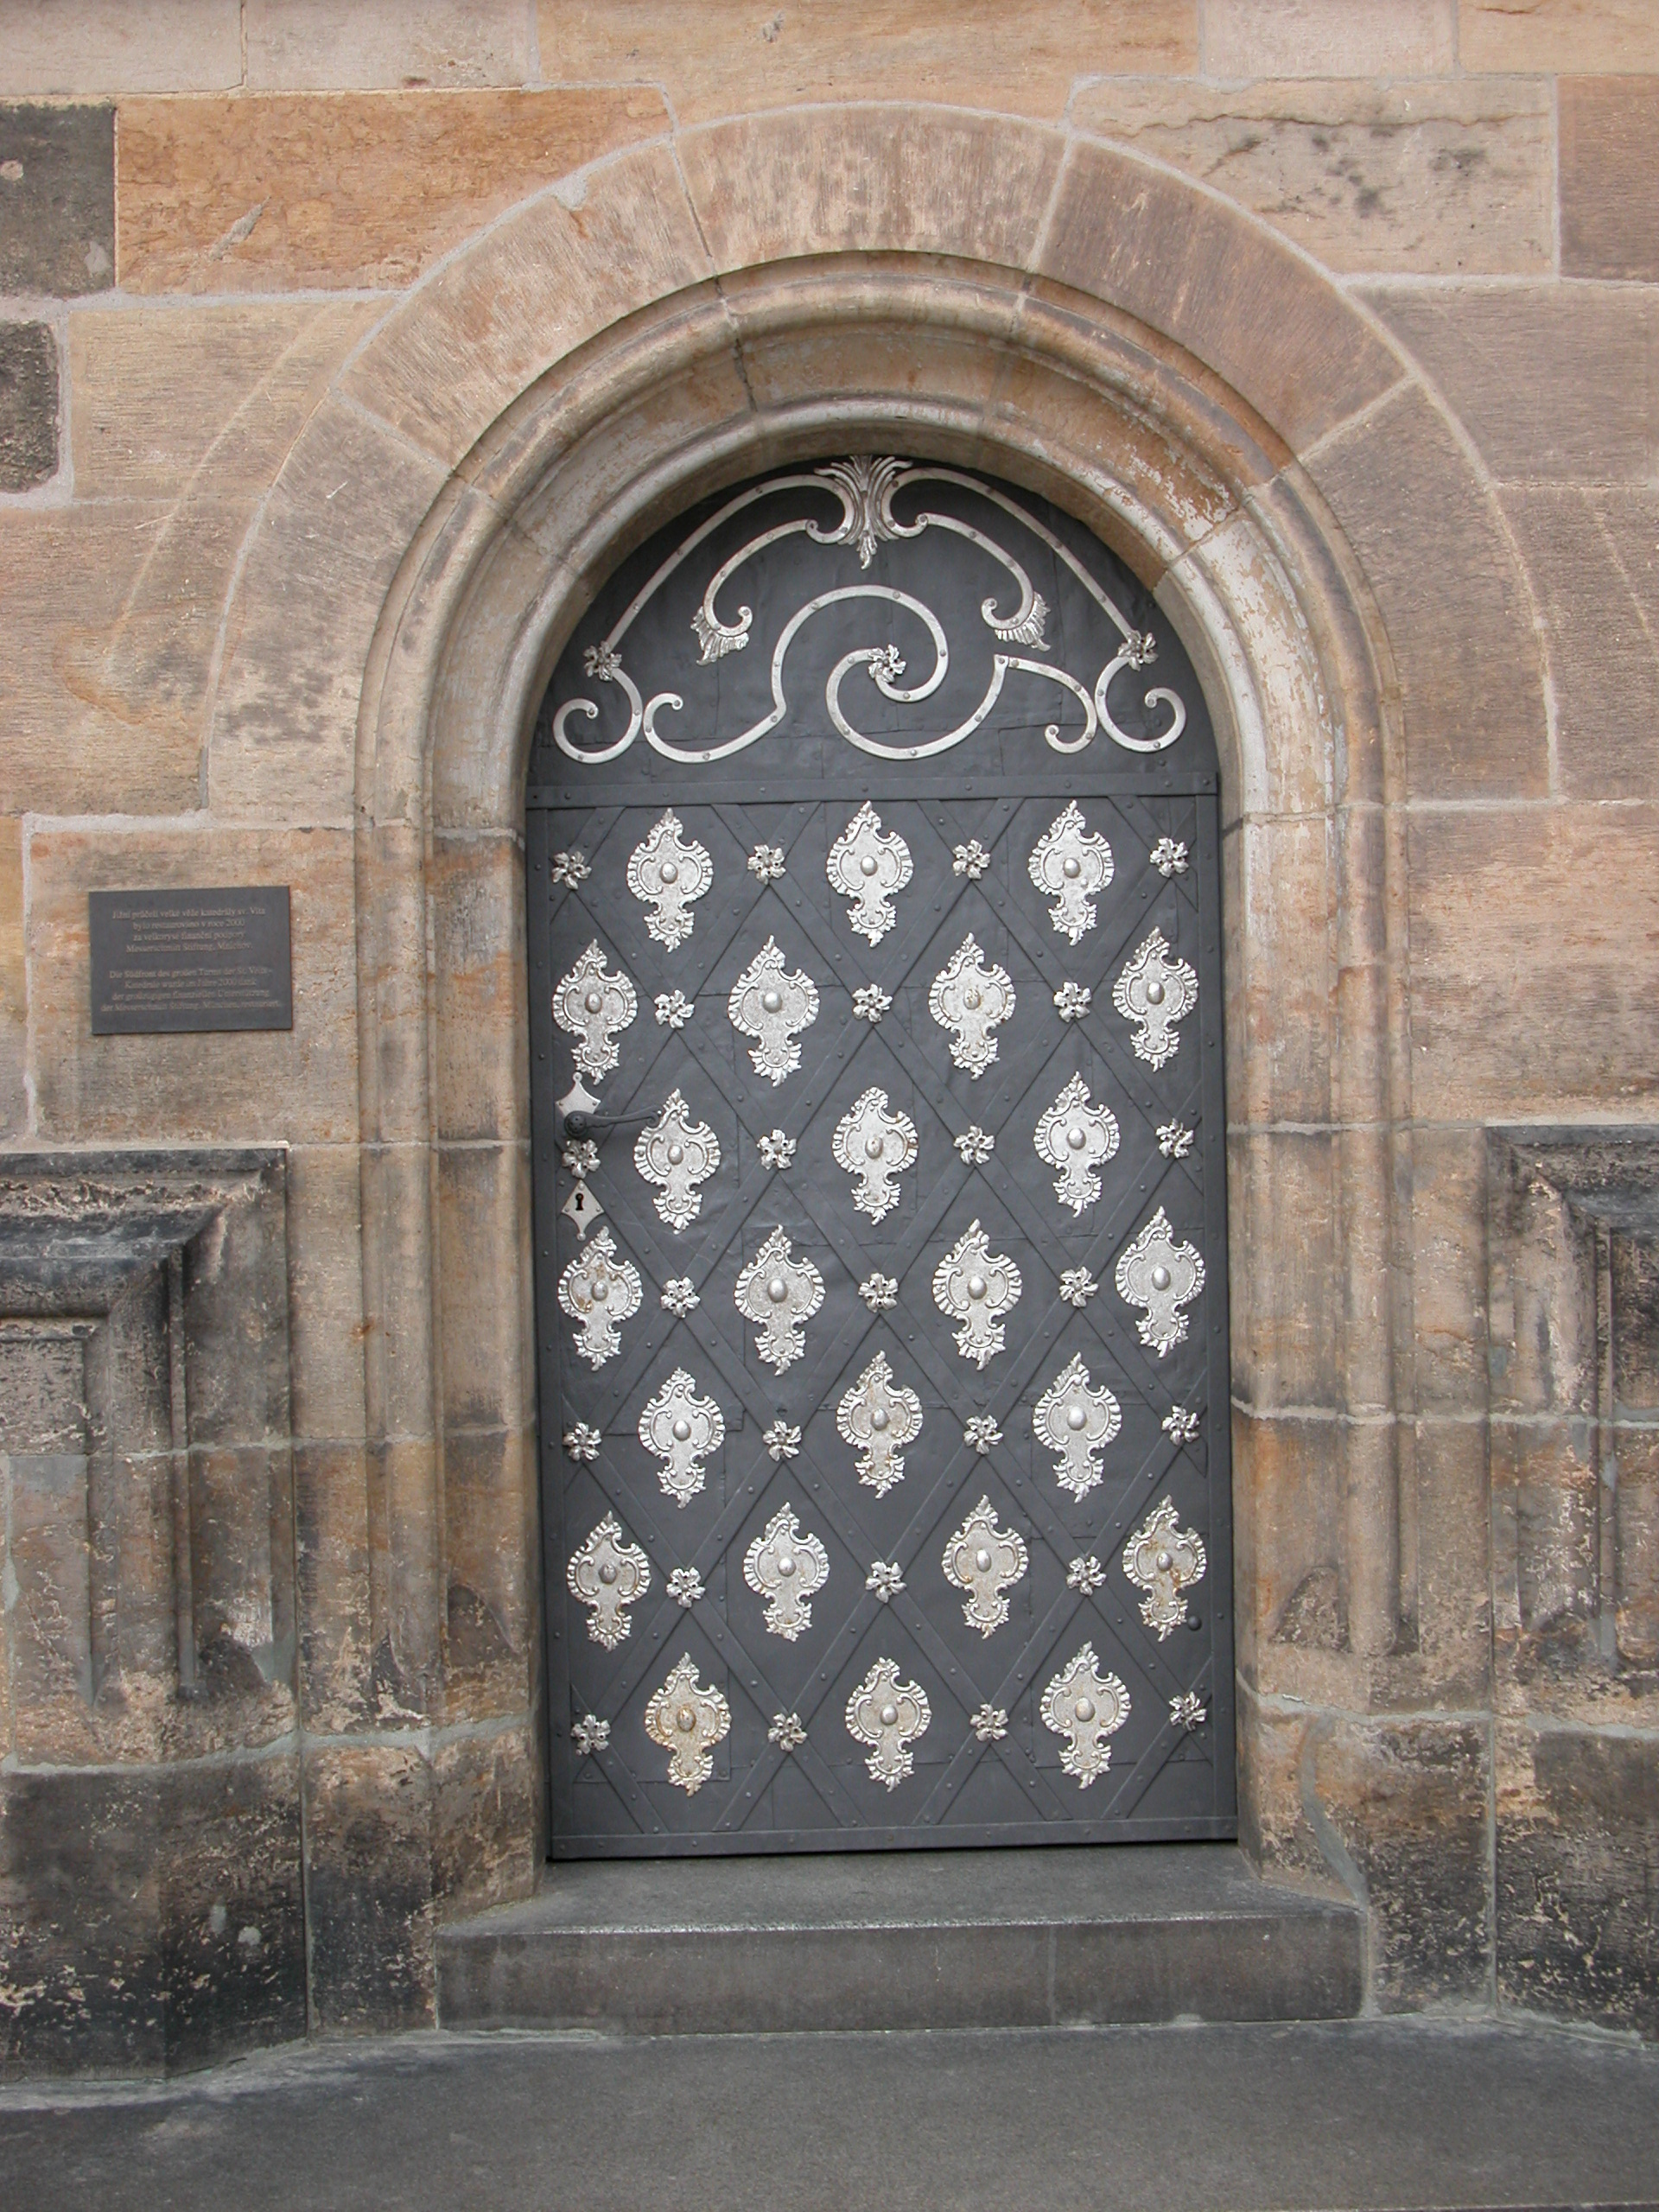 walls texture door doors entrance mediaval mediavel pattern texture arch arched gothical roman wood ornamented metal royalty